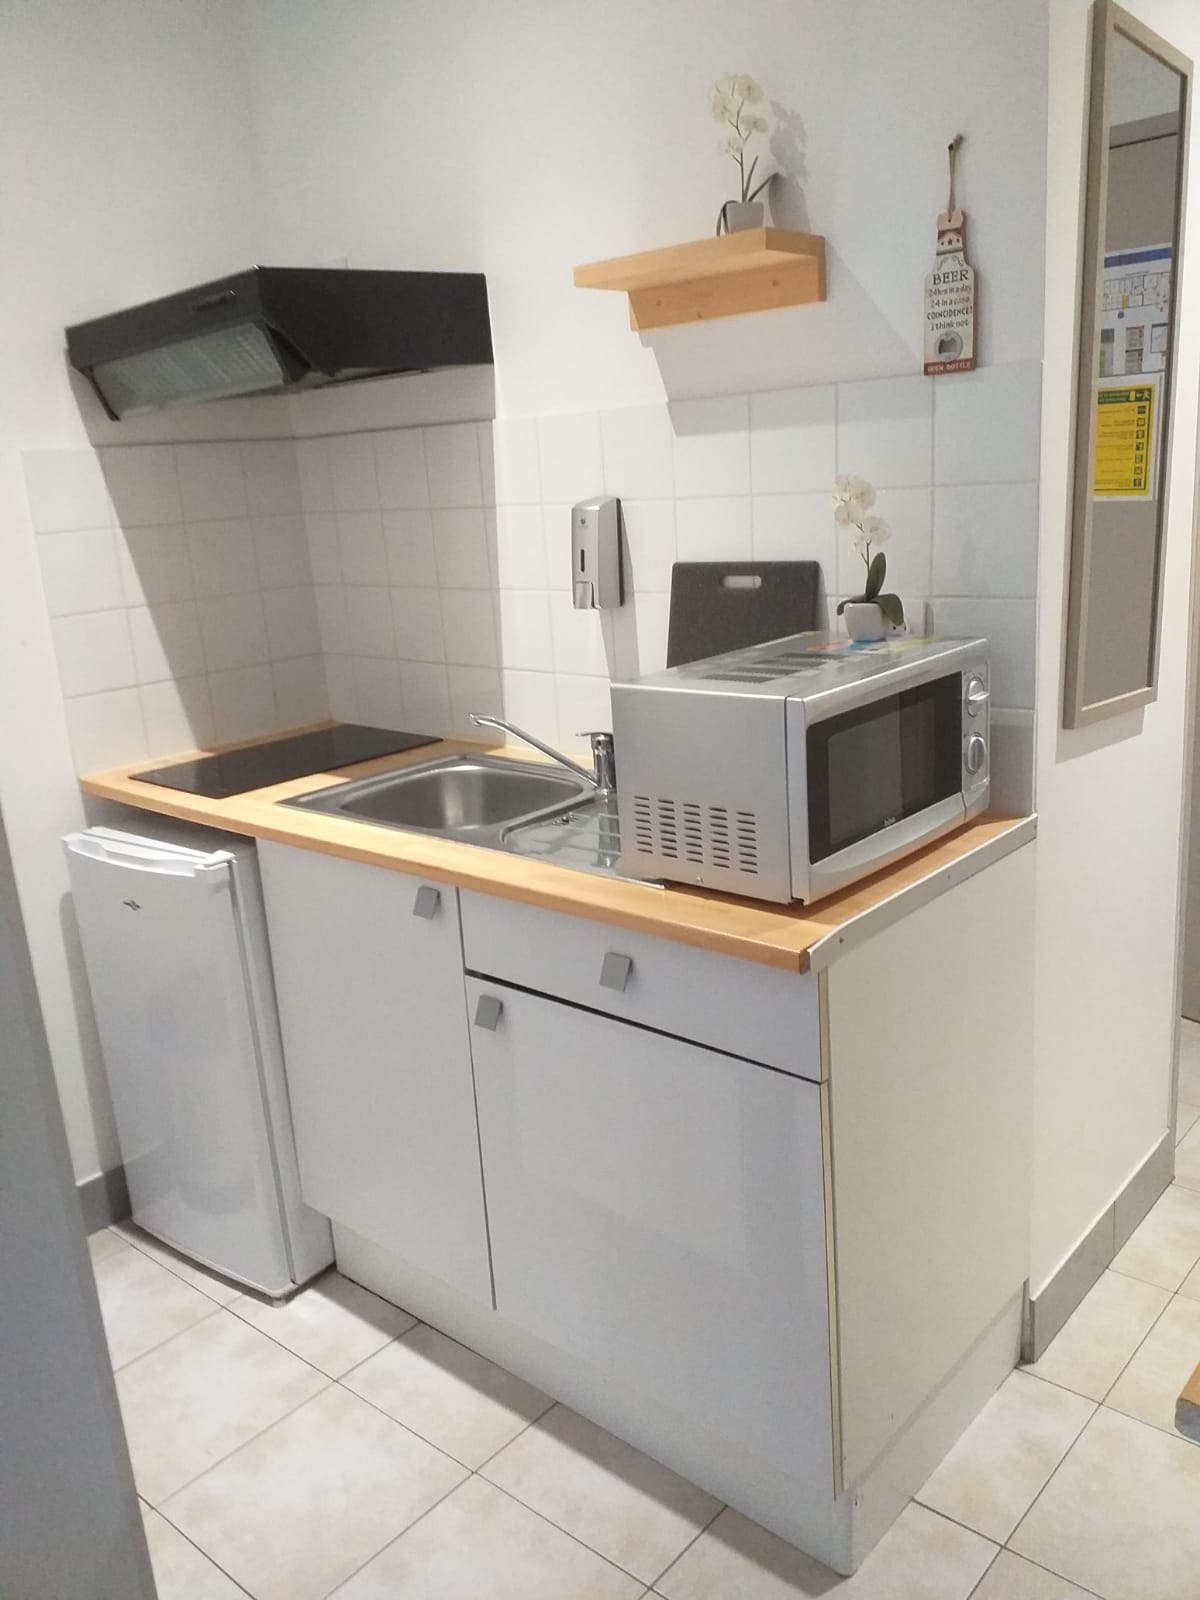 area studette kitchenette